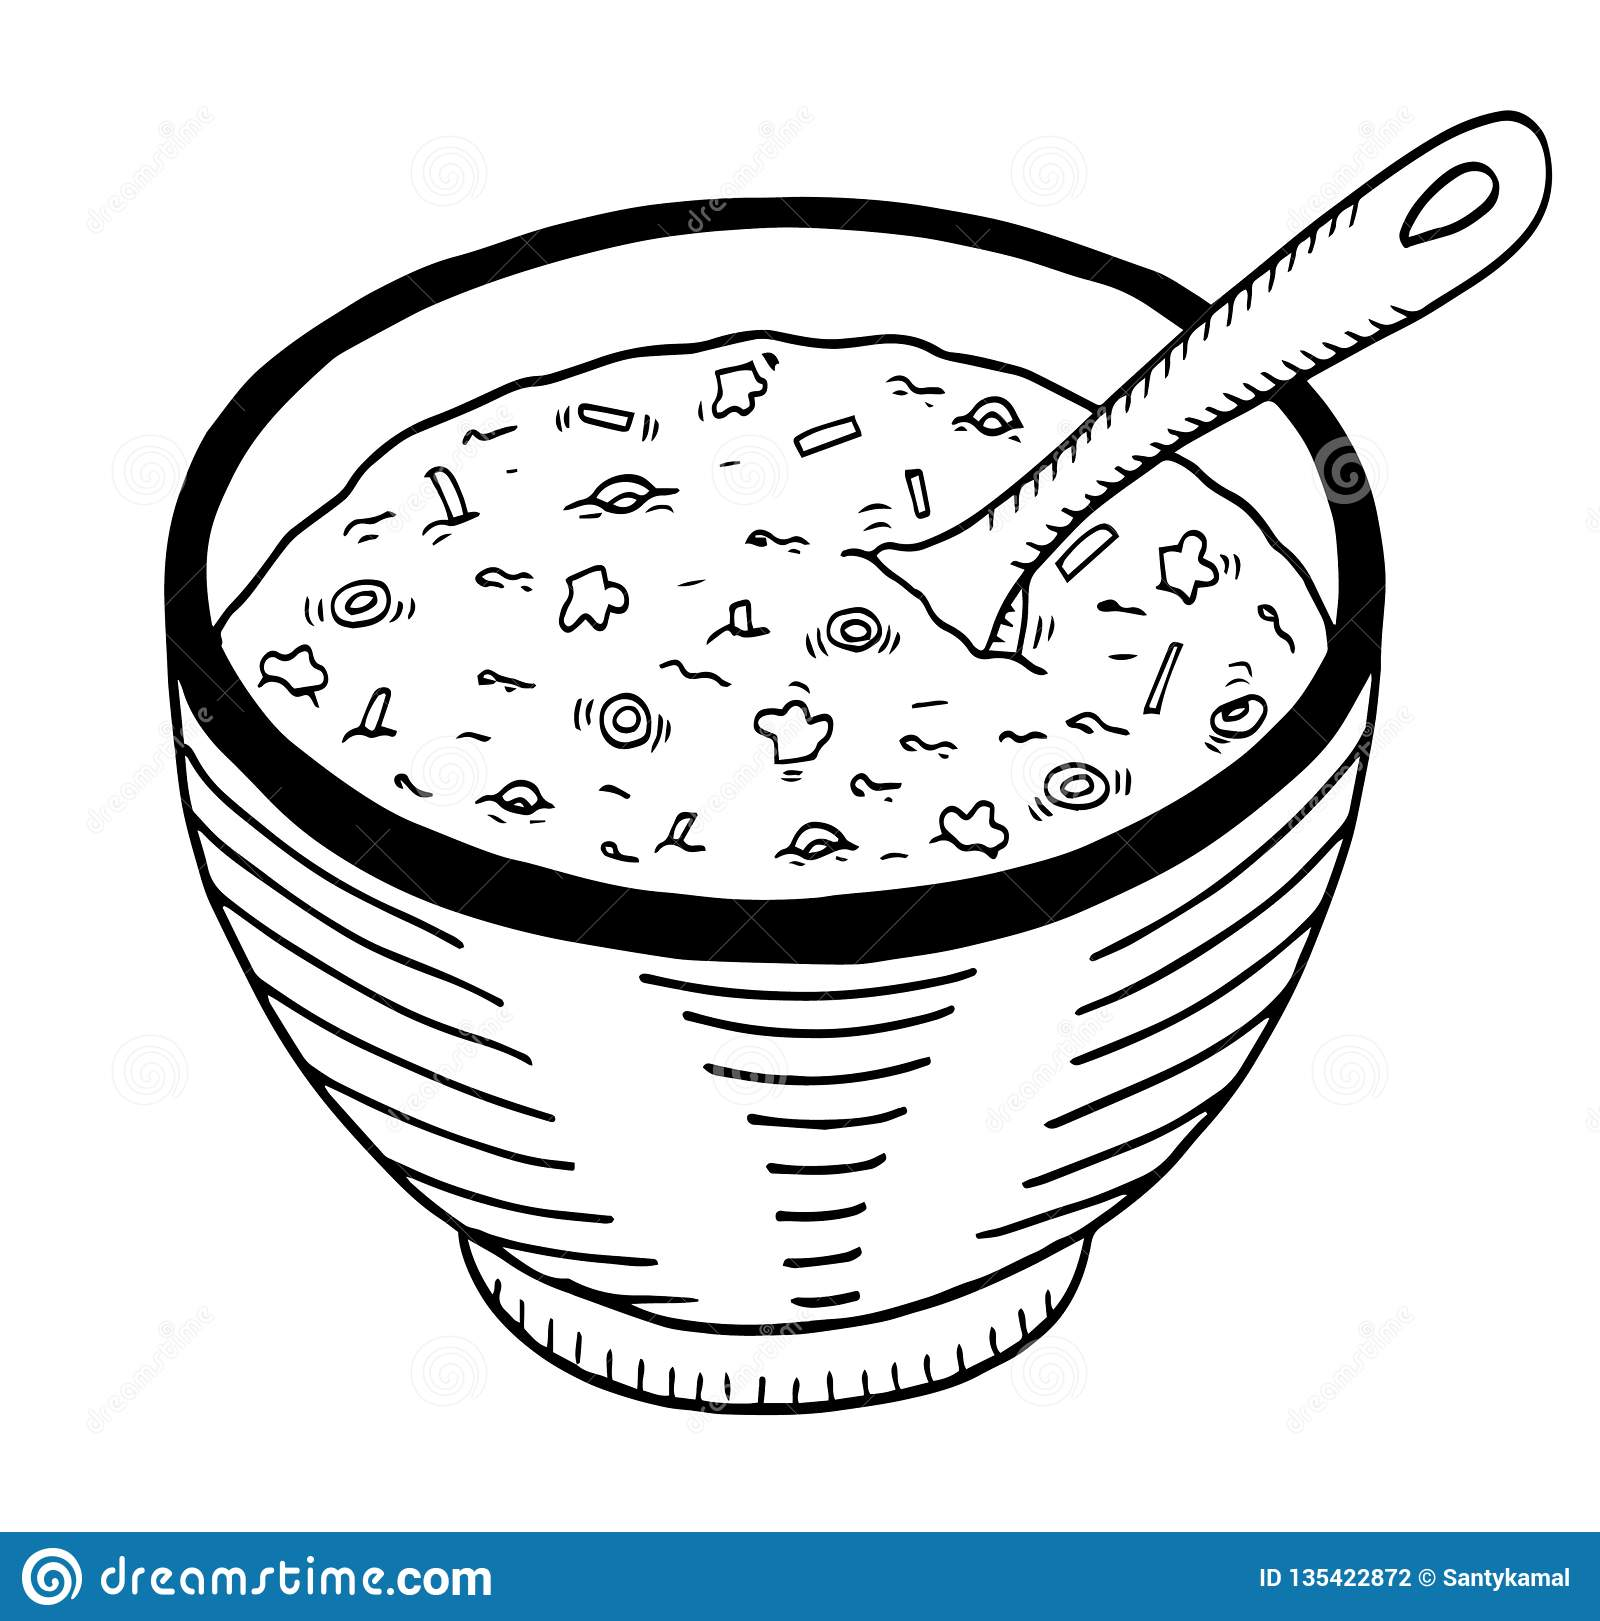 simple doodle of a bowl of soup stock